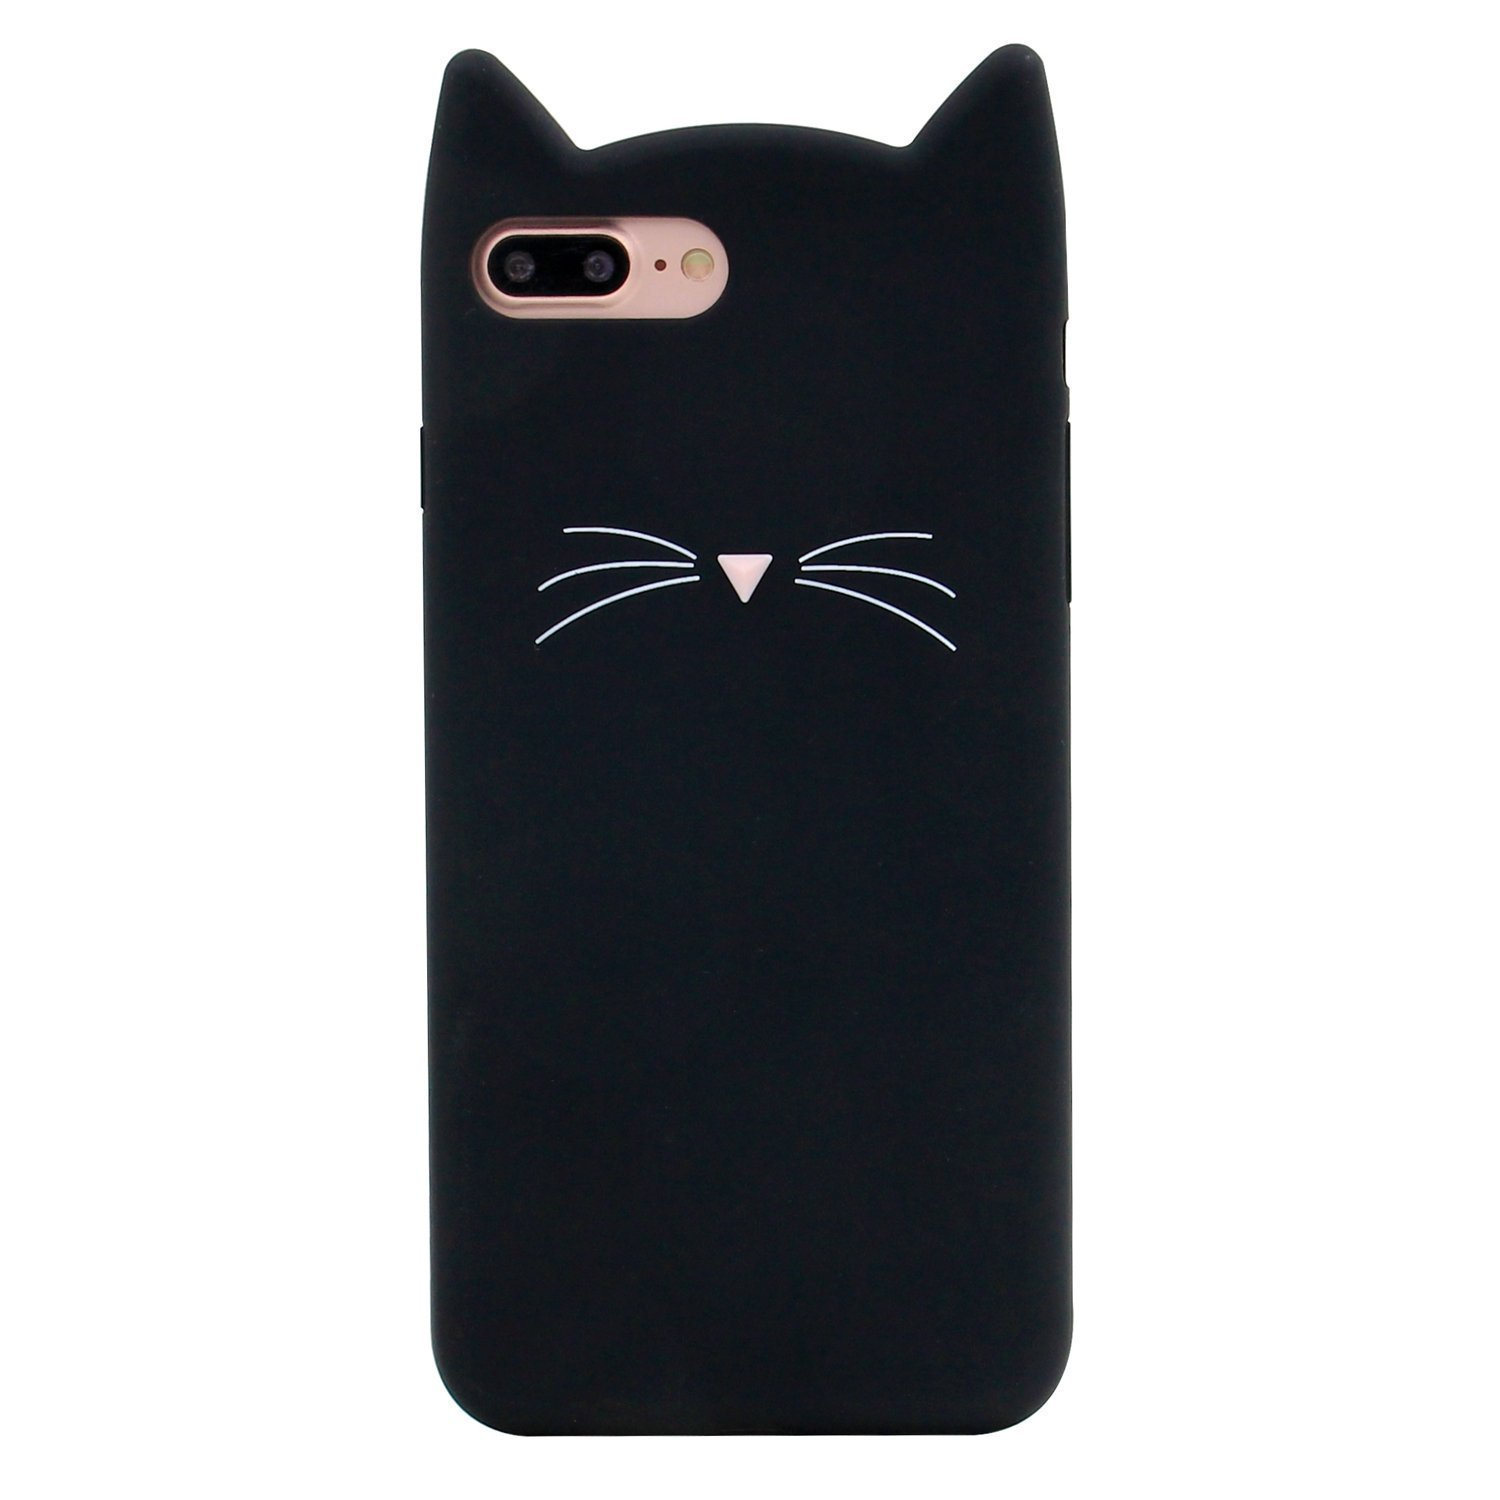 DiDicose Huawei P10 Plus Case,3D Cartoon Animal Black Whiskers Cat Kitty Silicone Rubber Phone Case Cover for Huawei P10 Plus